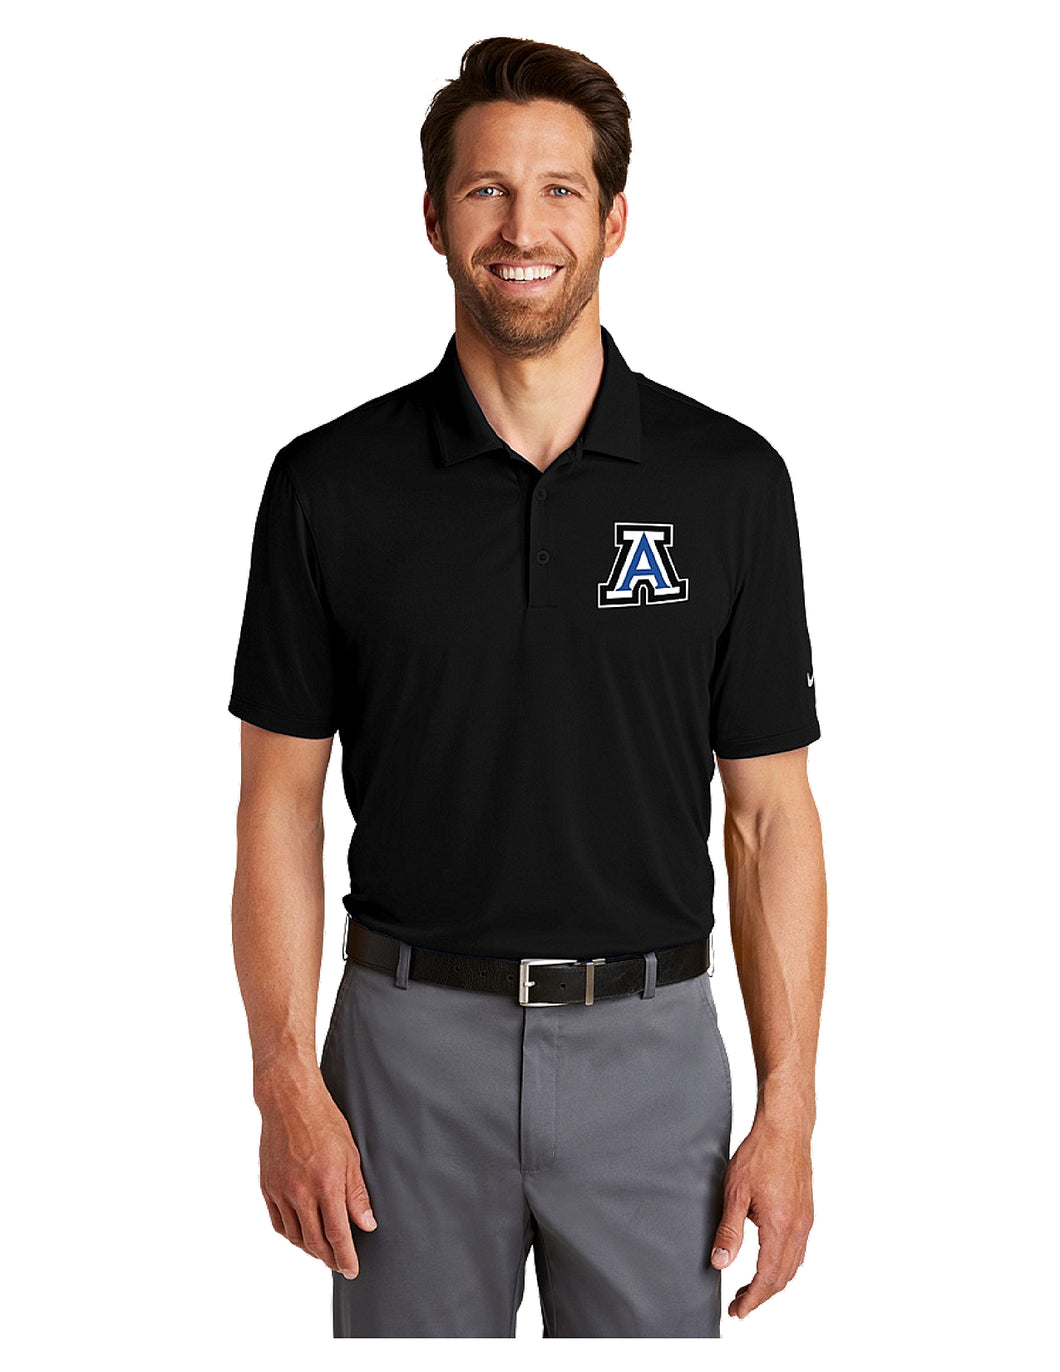 Nike Dri-FIT Legacy Polo Black with Embroidered Acalanes